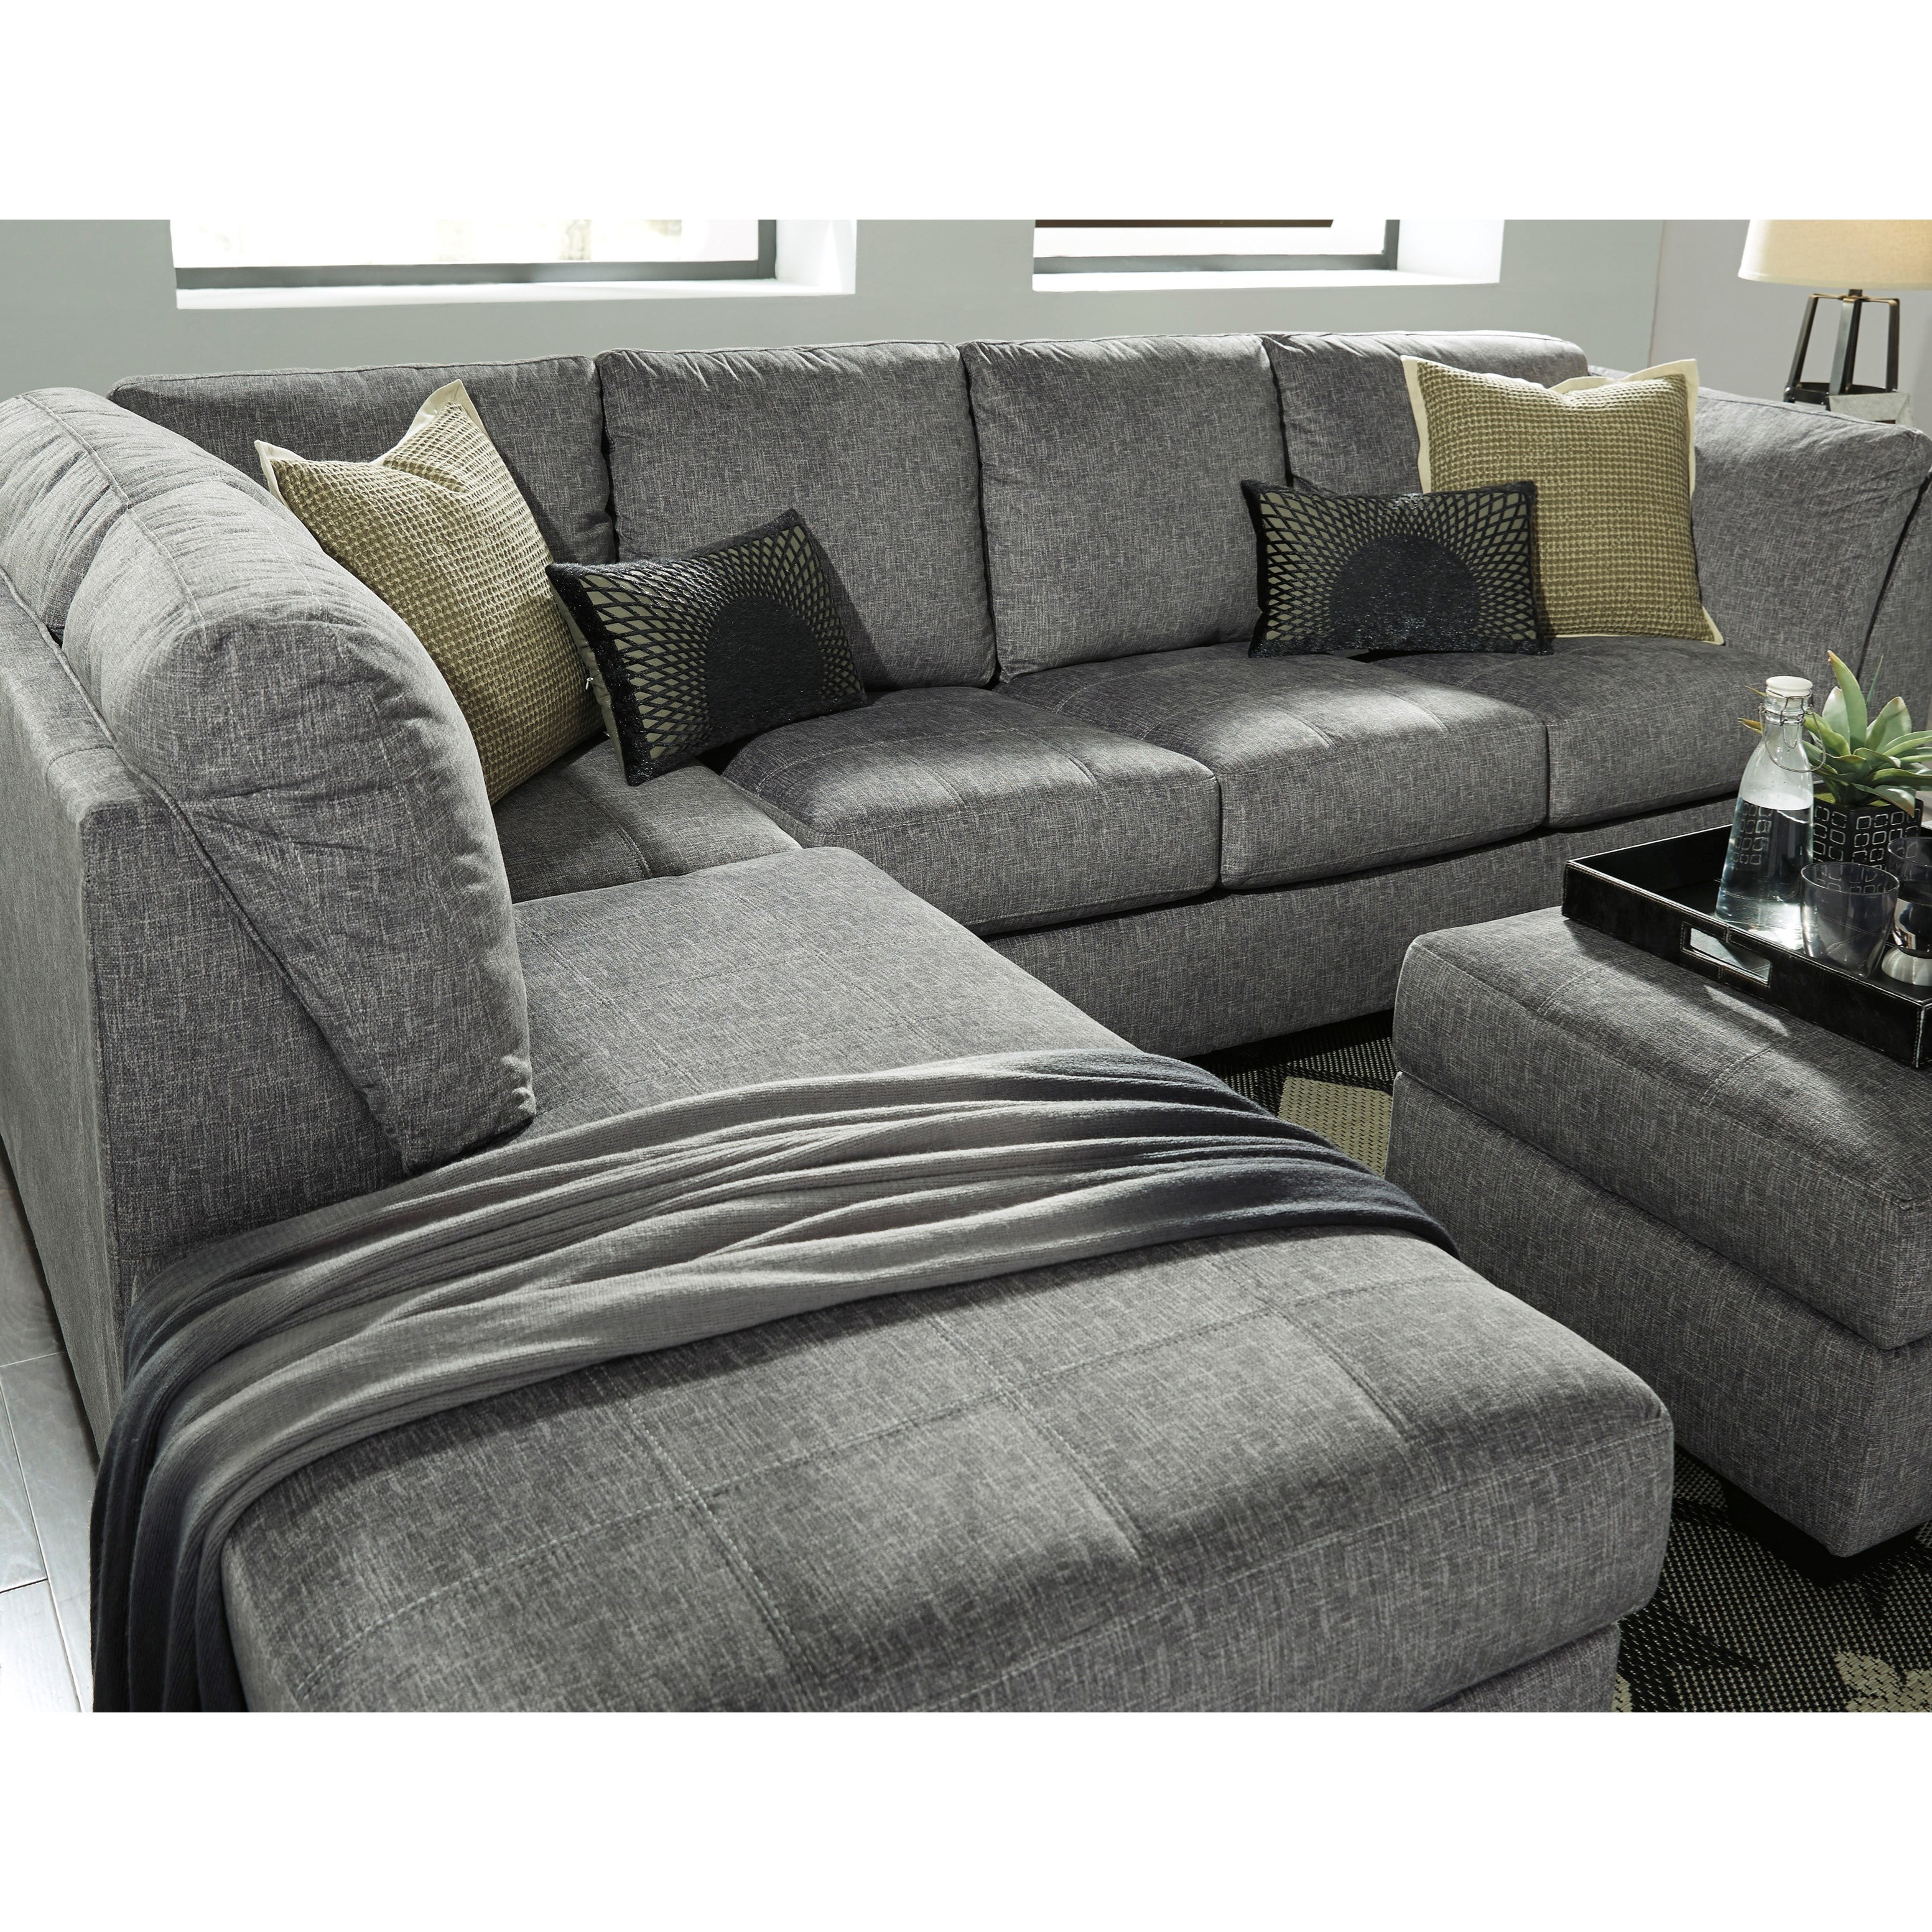 liberty 2 piece sofa and motion loveseat group in grey ashley premium italian leather benchcraft belcastel sectional with left chaise